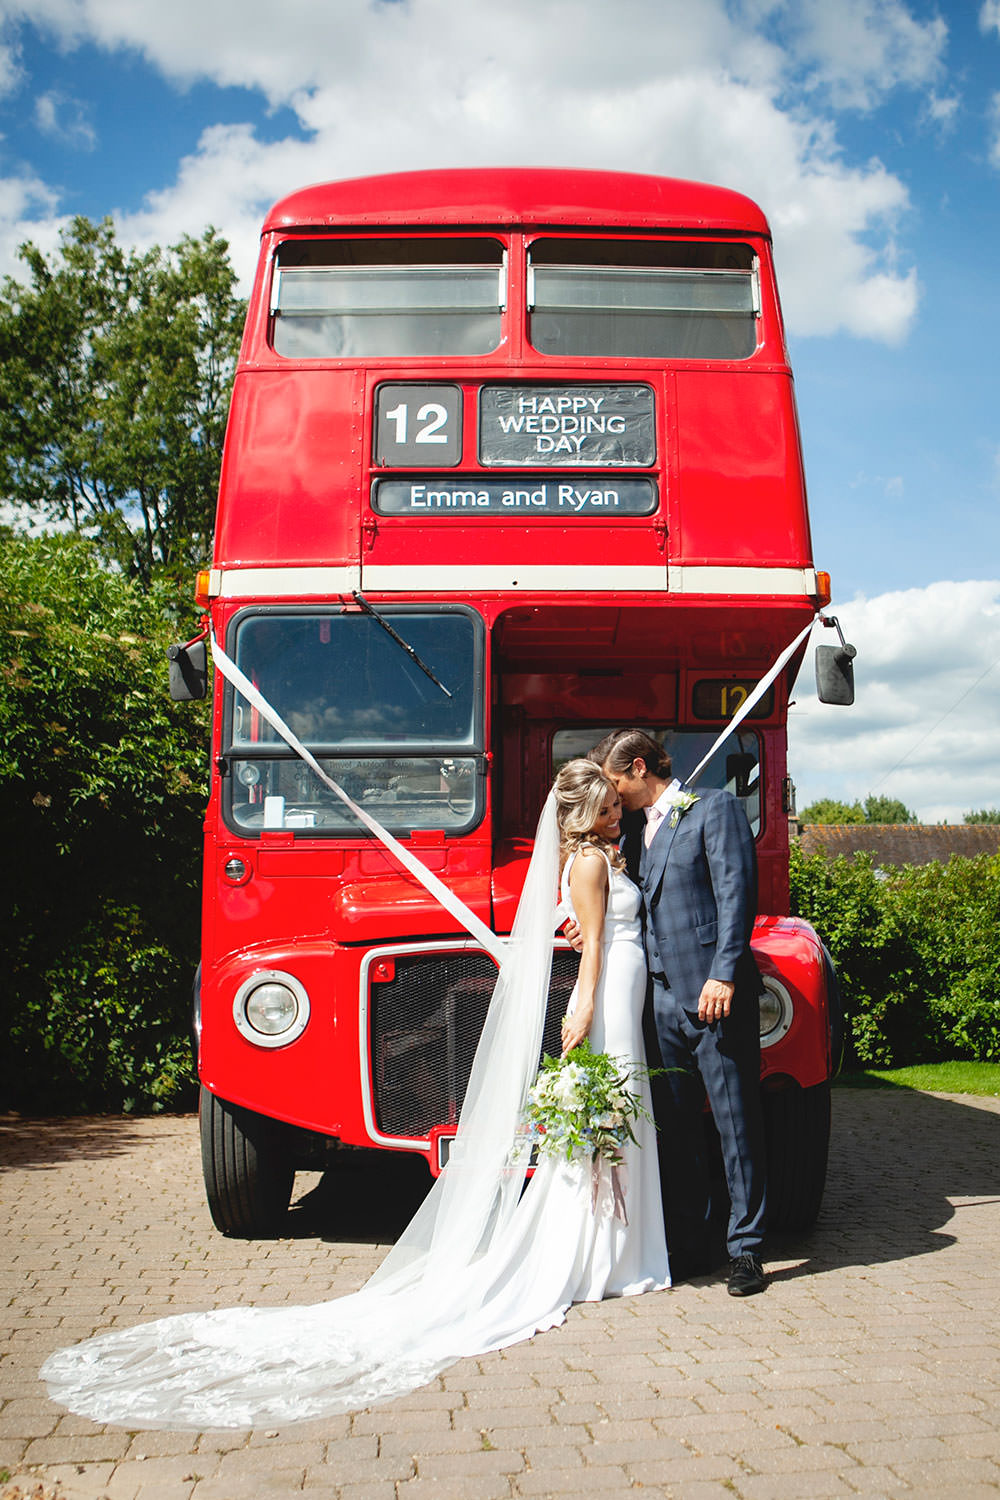 Bride bridal Fitted Fishtail Dress Gown Checked Suit Groom Vintage Bus Bouquet Countryside Barn Wedding Katrina Matthews Photography